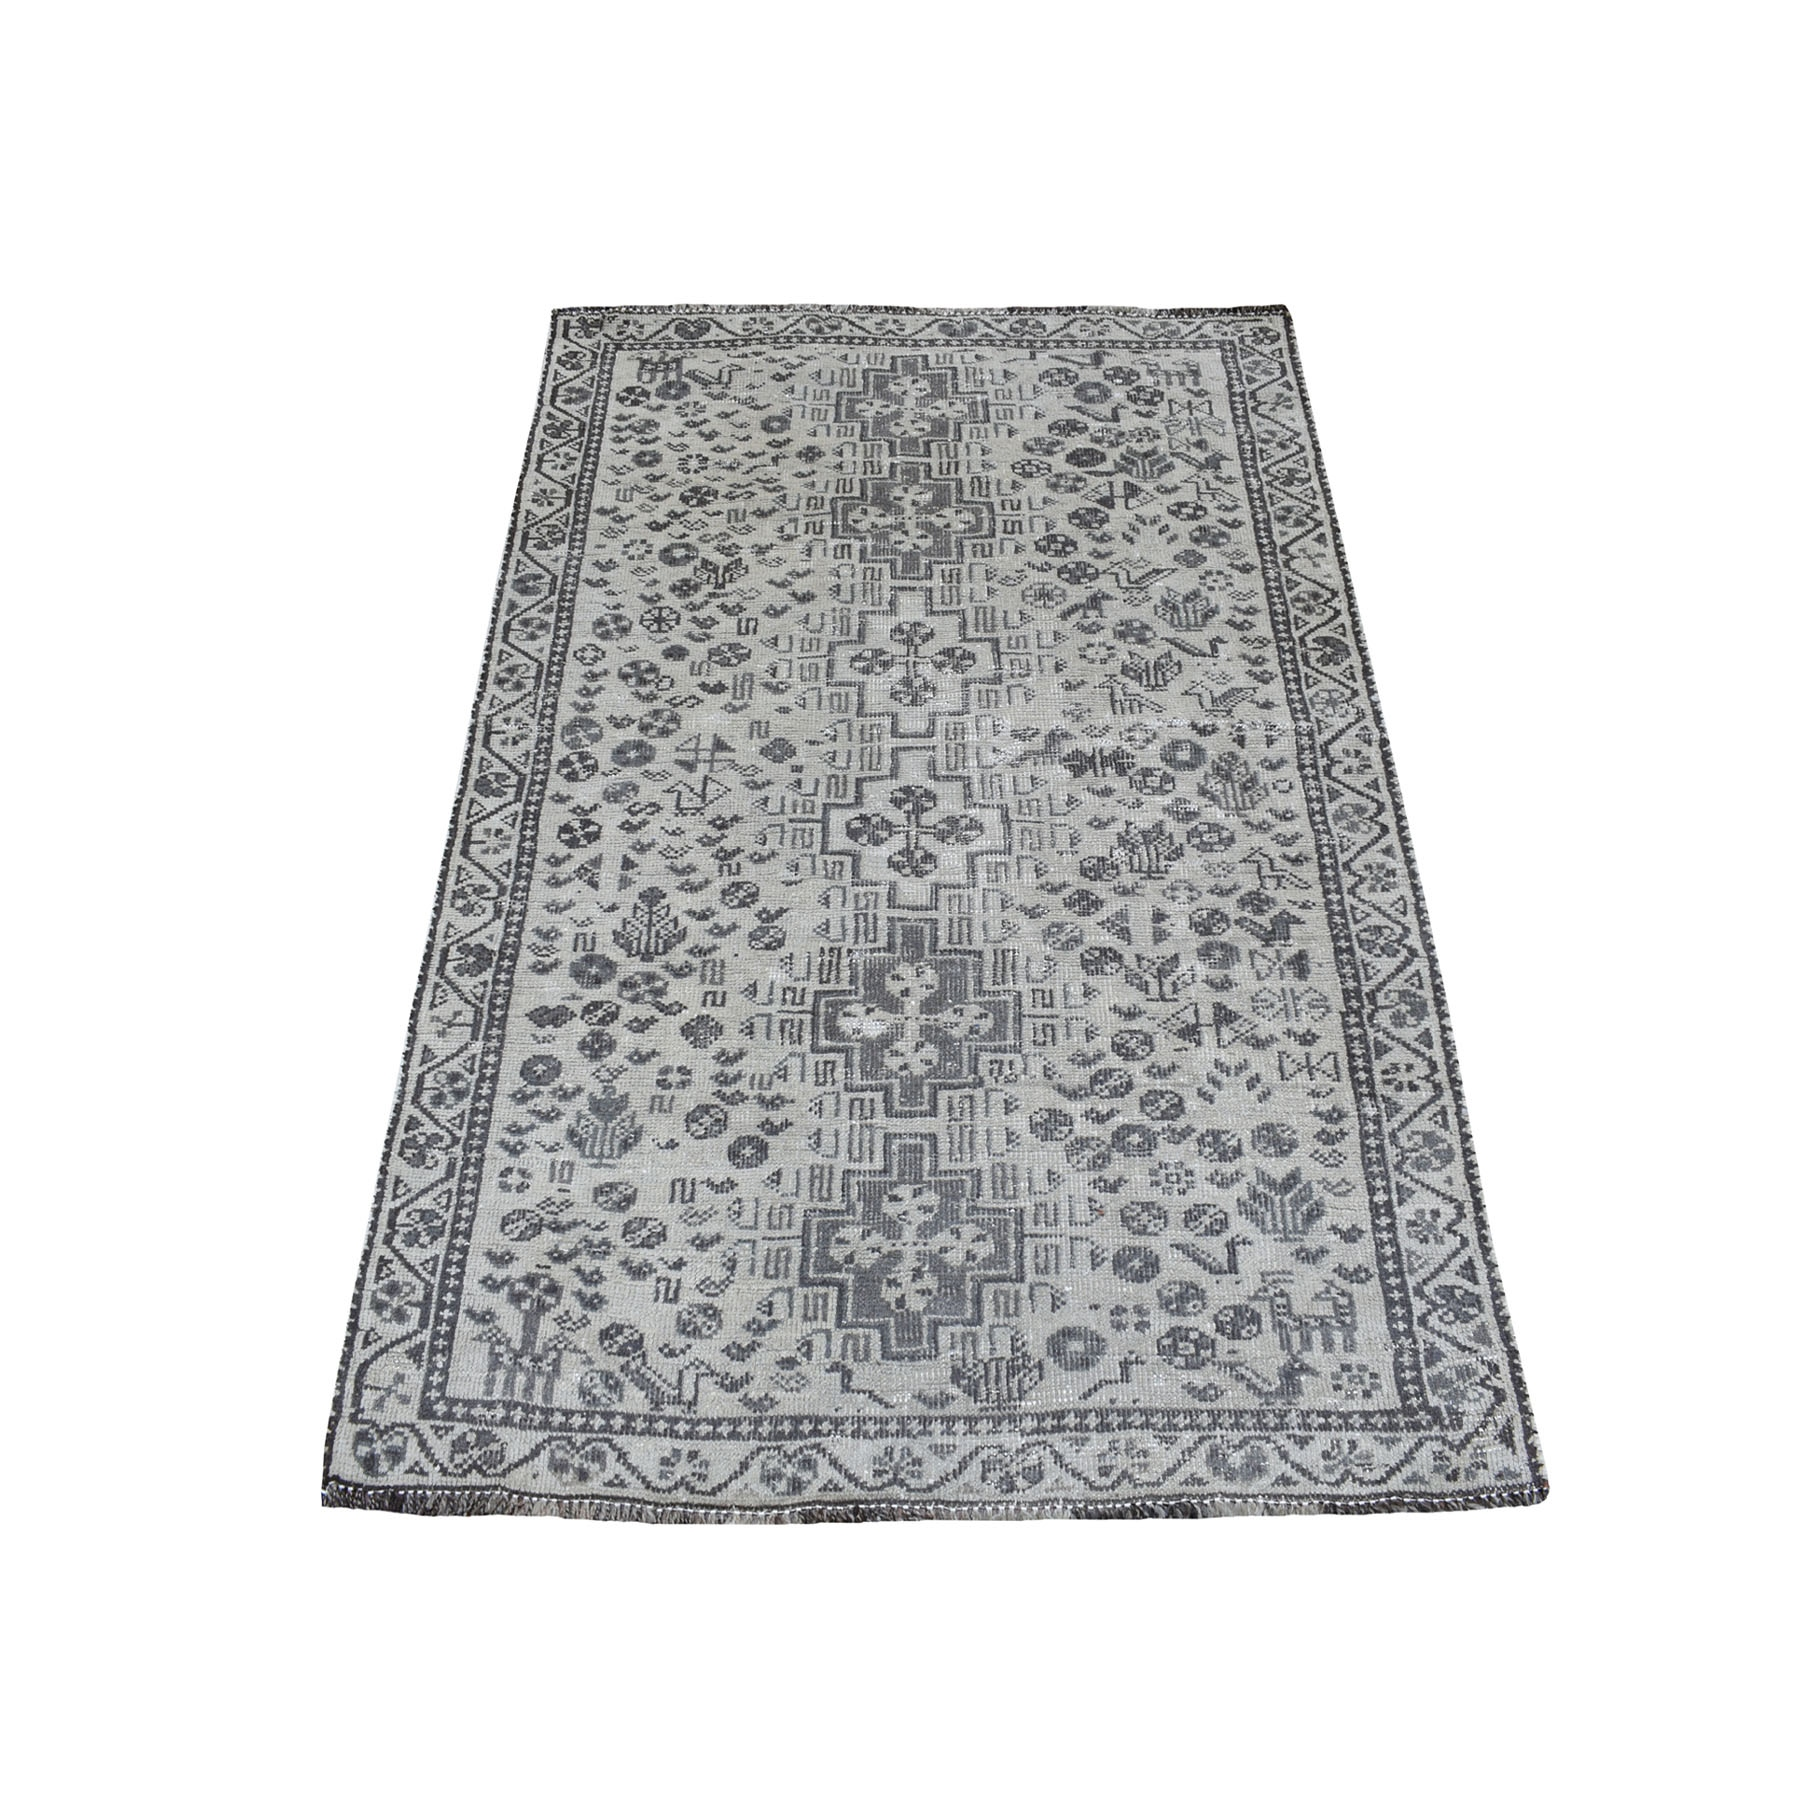 """3'4""""x4'9"""" Vintage And Worn Down Distressed Colors Persian Shiraz Hand Knotted Bohemian Rug 54080"""